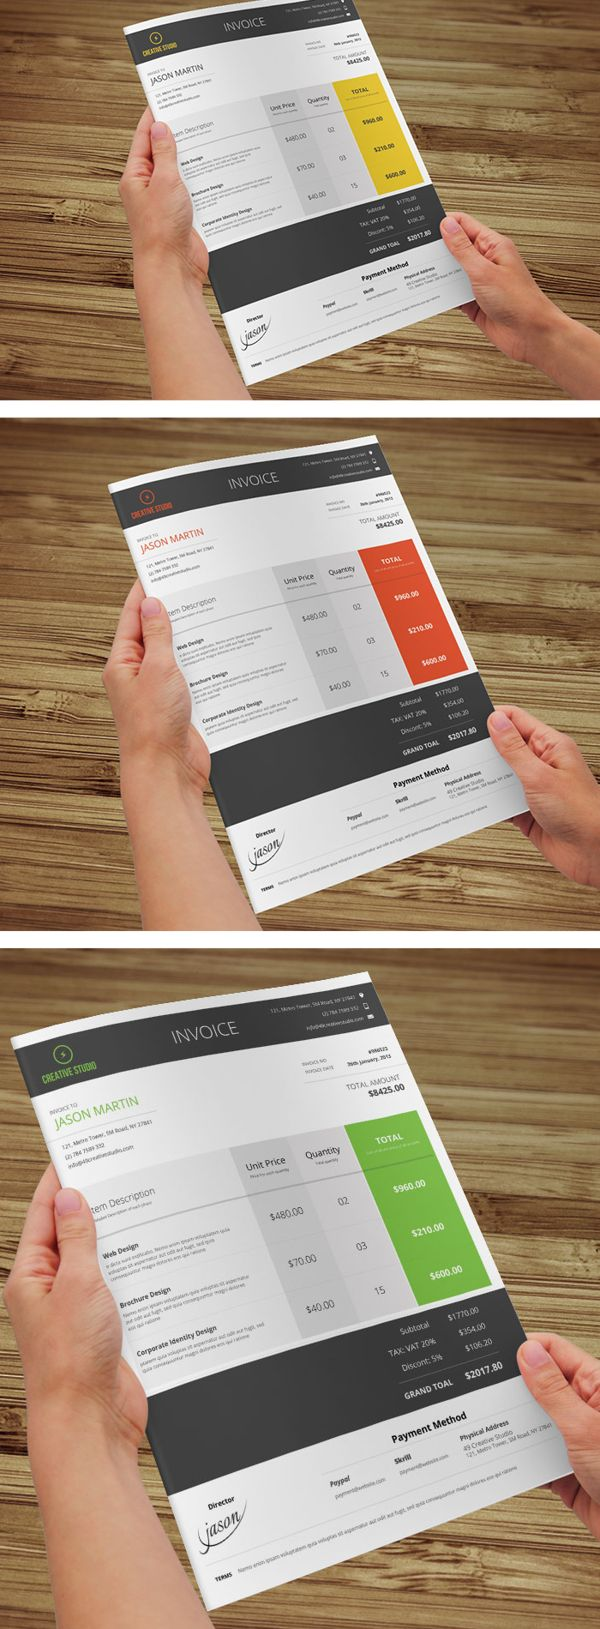 How To Fill Out Invoice Best  Invoice Sample Ideas On Pinterest  Invoice Example Http  How To File Receipts Pdf with Filling Out An Invoice  Creative Invoice Template Designs Labcorp Invoice